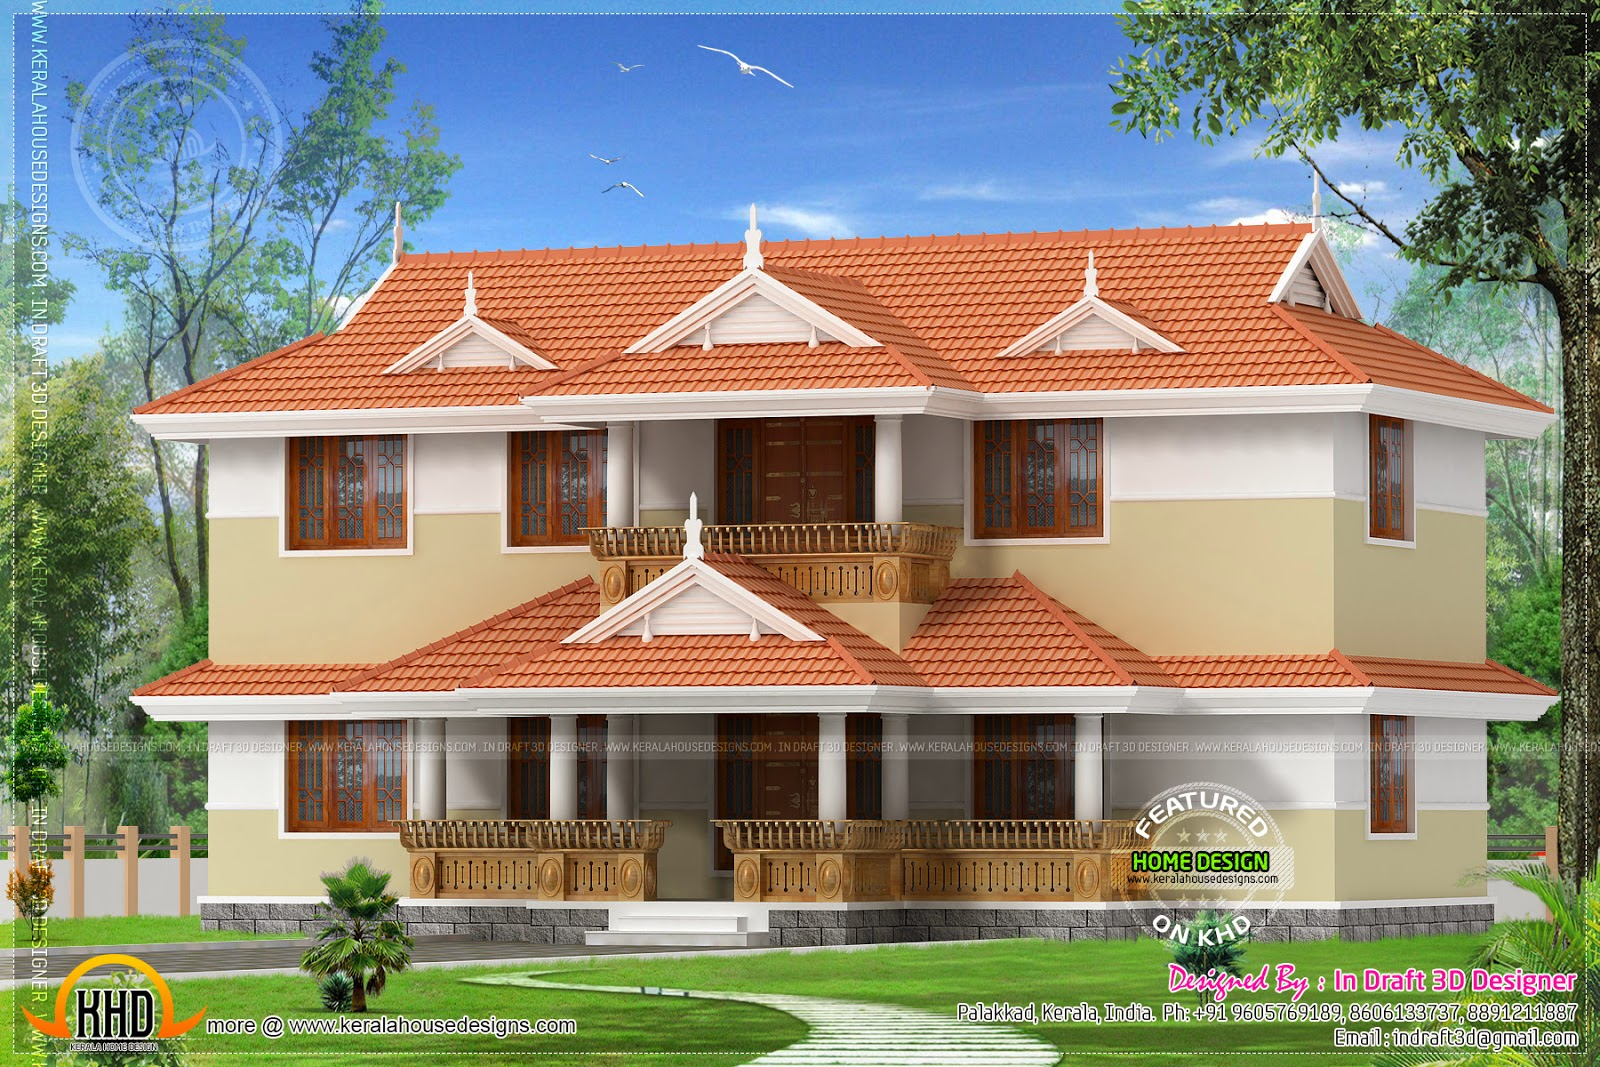 4 bed room traditional kerala home with courtyard kerala for Traditional house plans in kerala